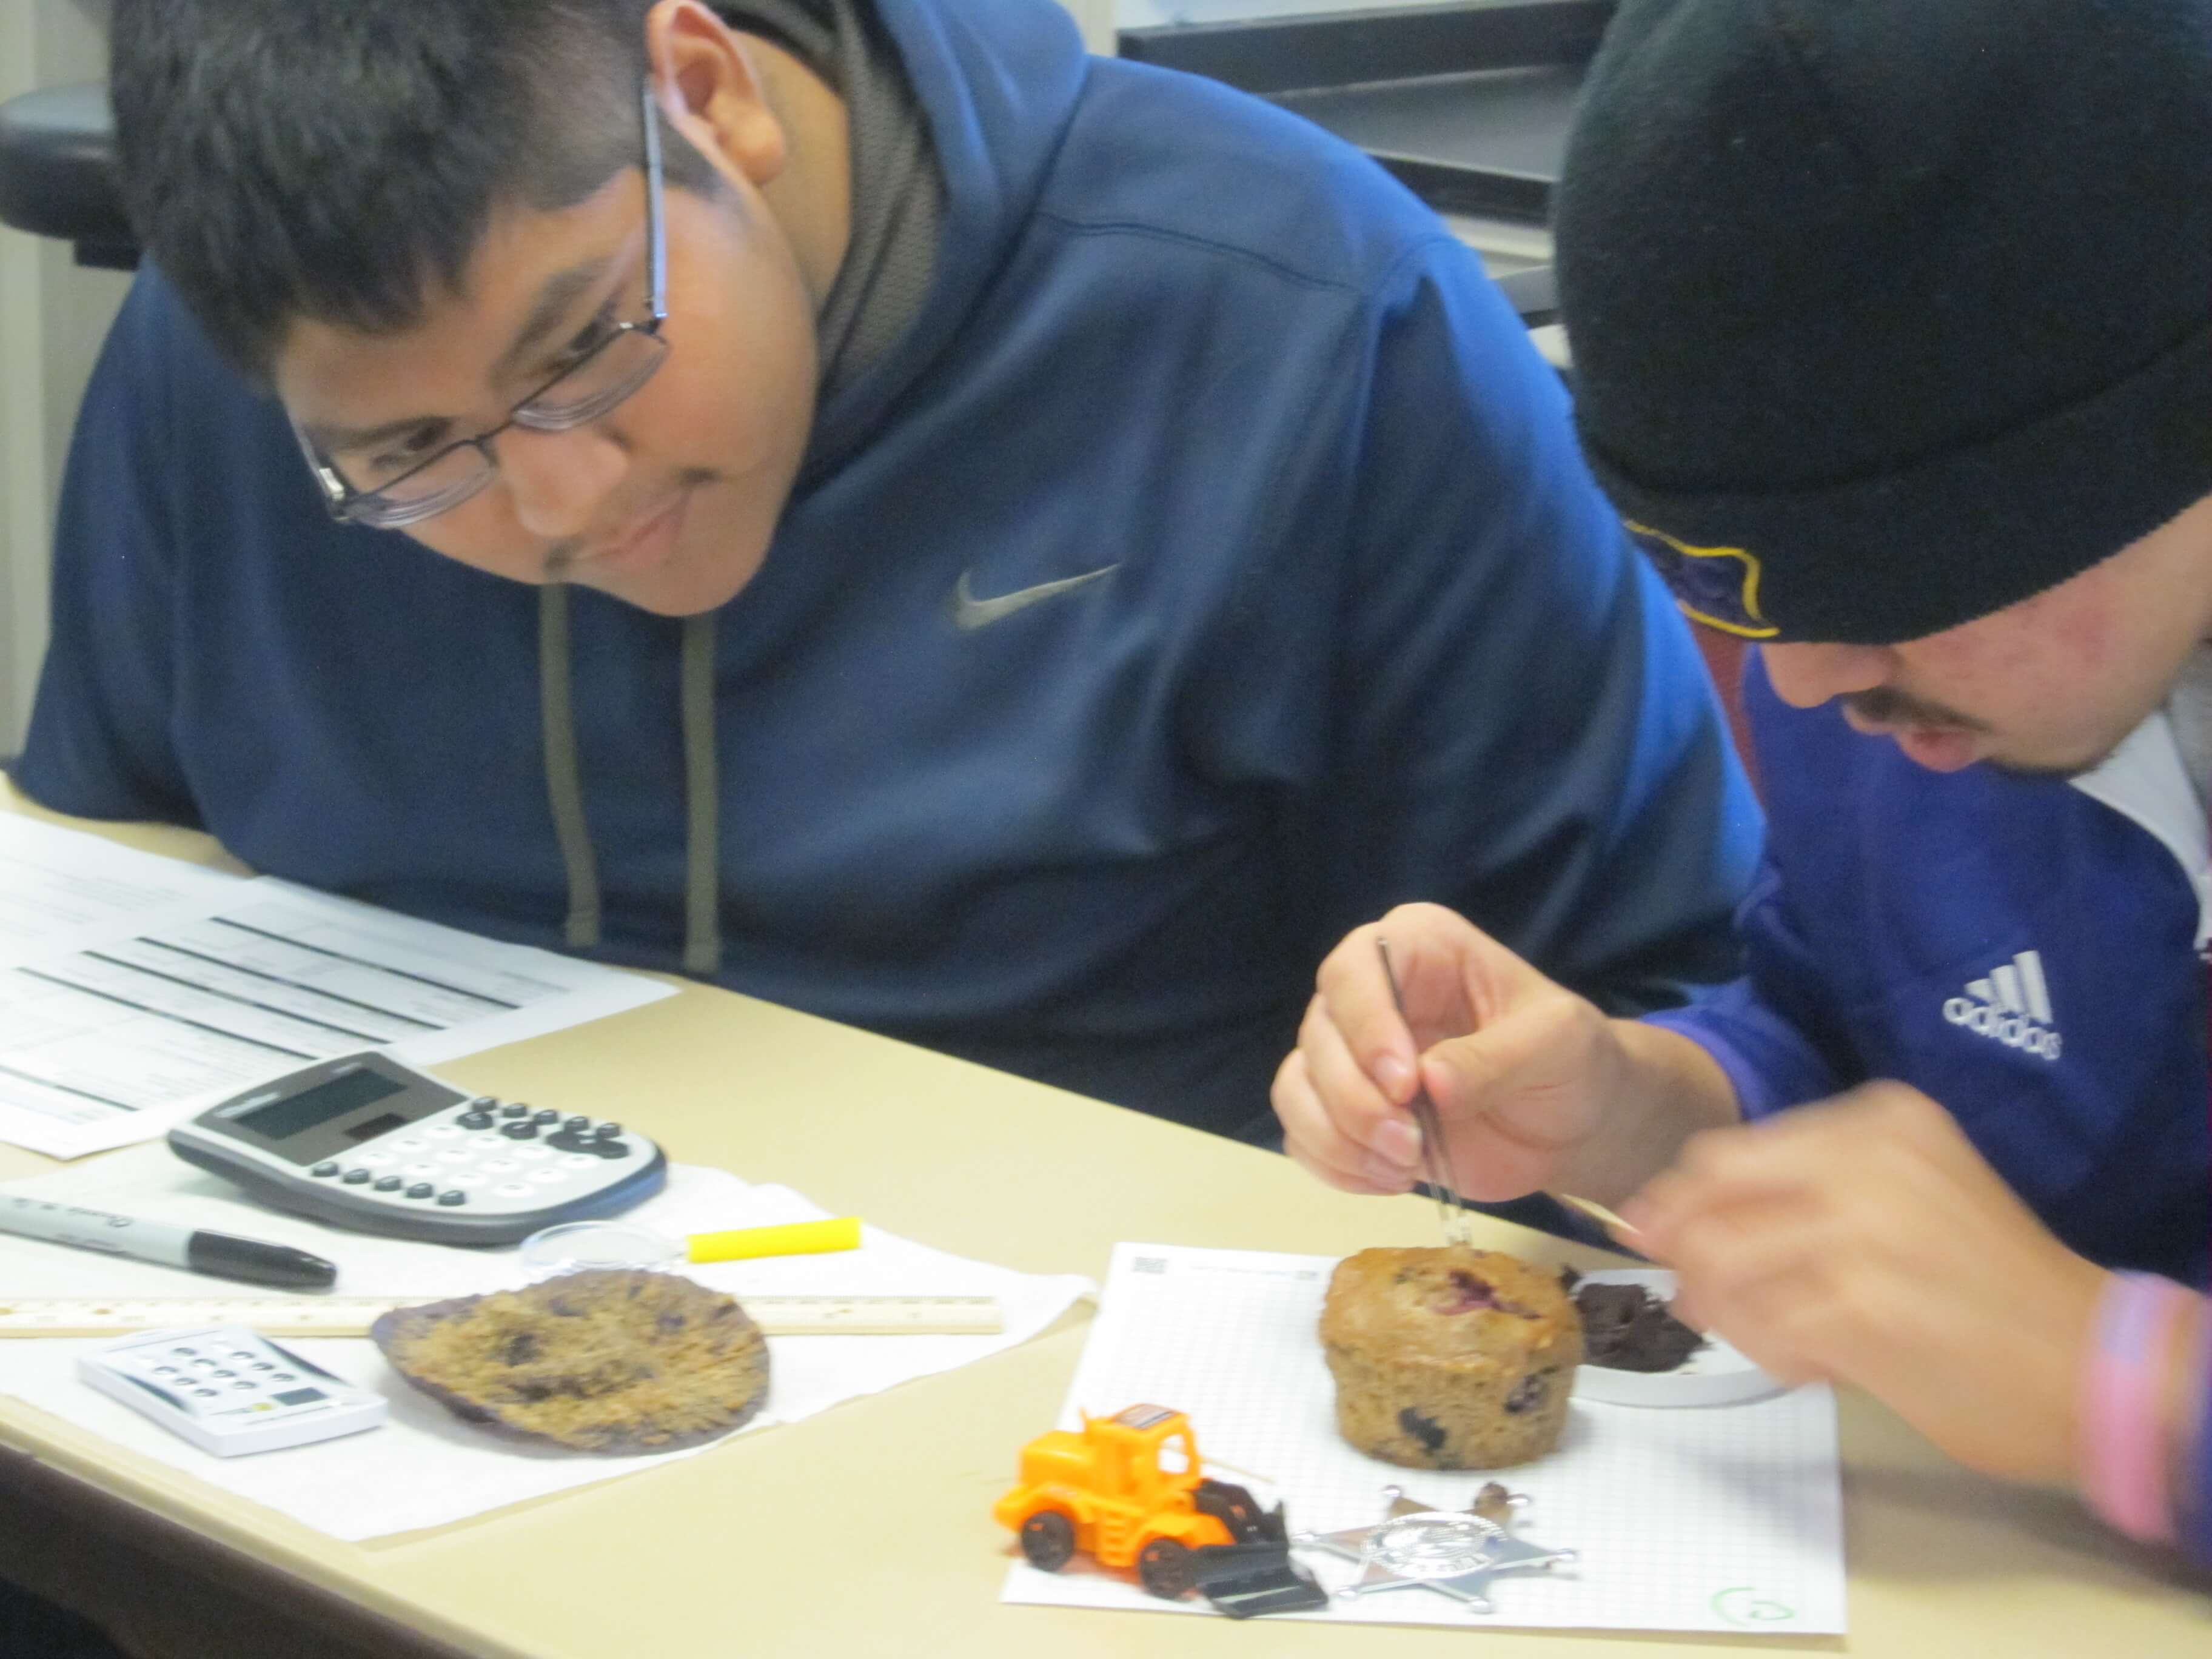 Two individuals participate in muffin mining exercise to learn about copper mining.